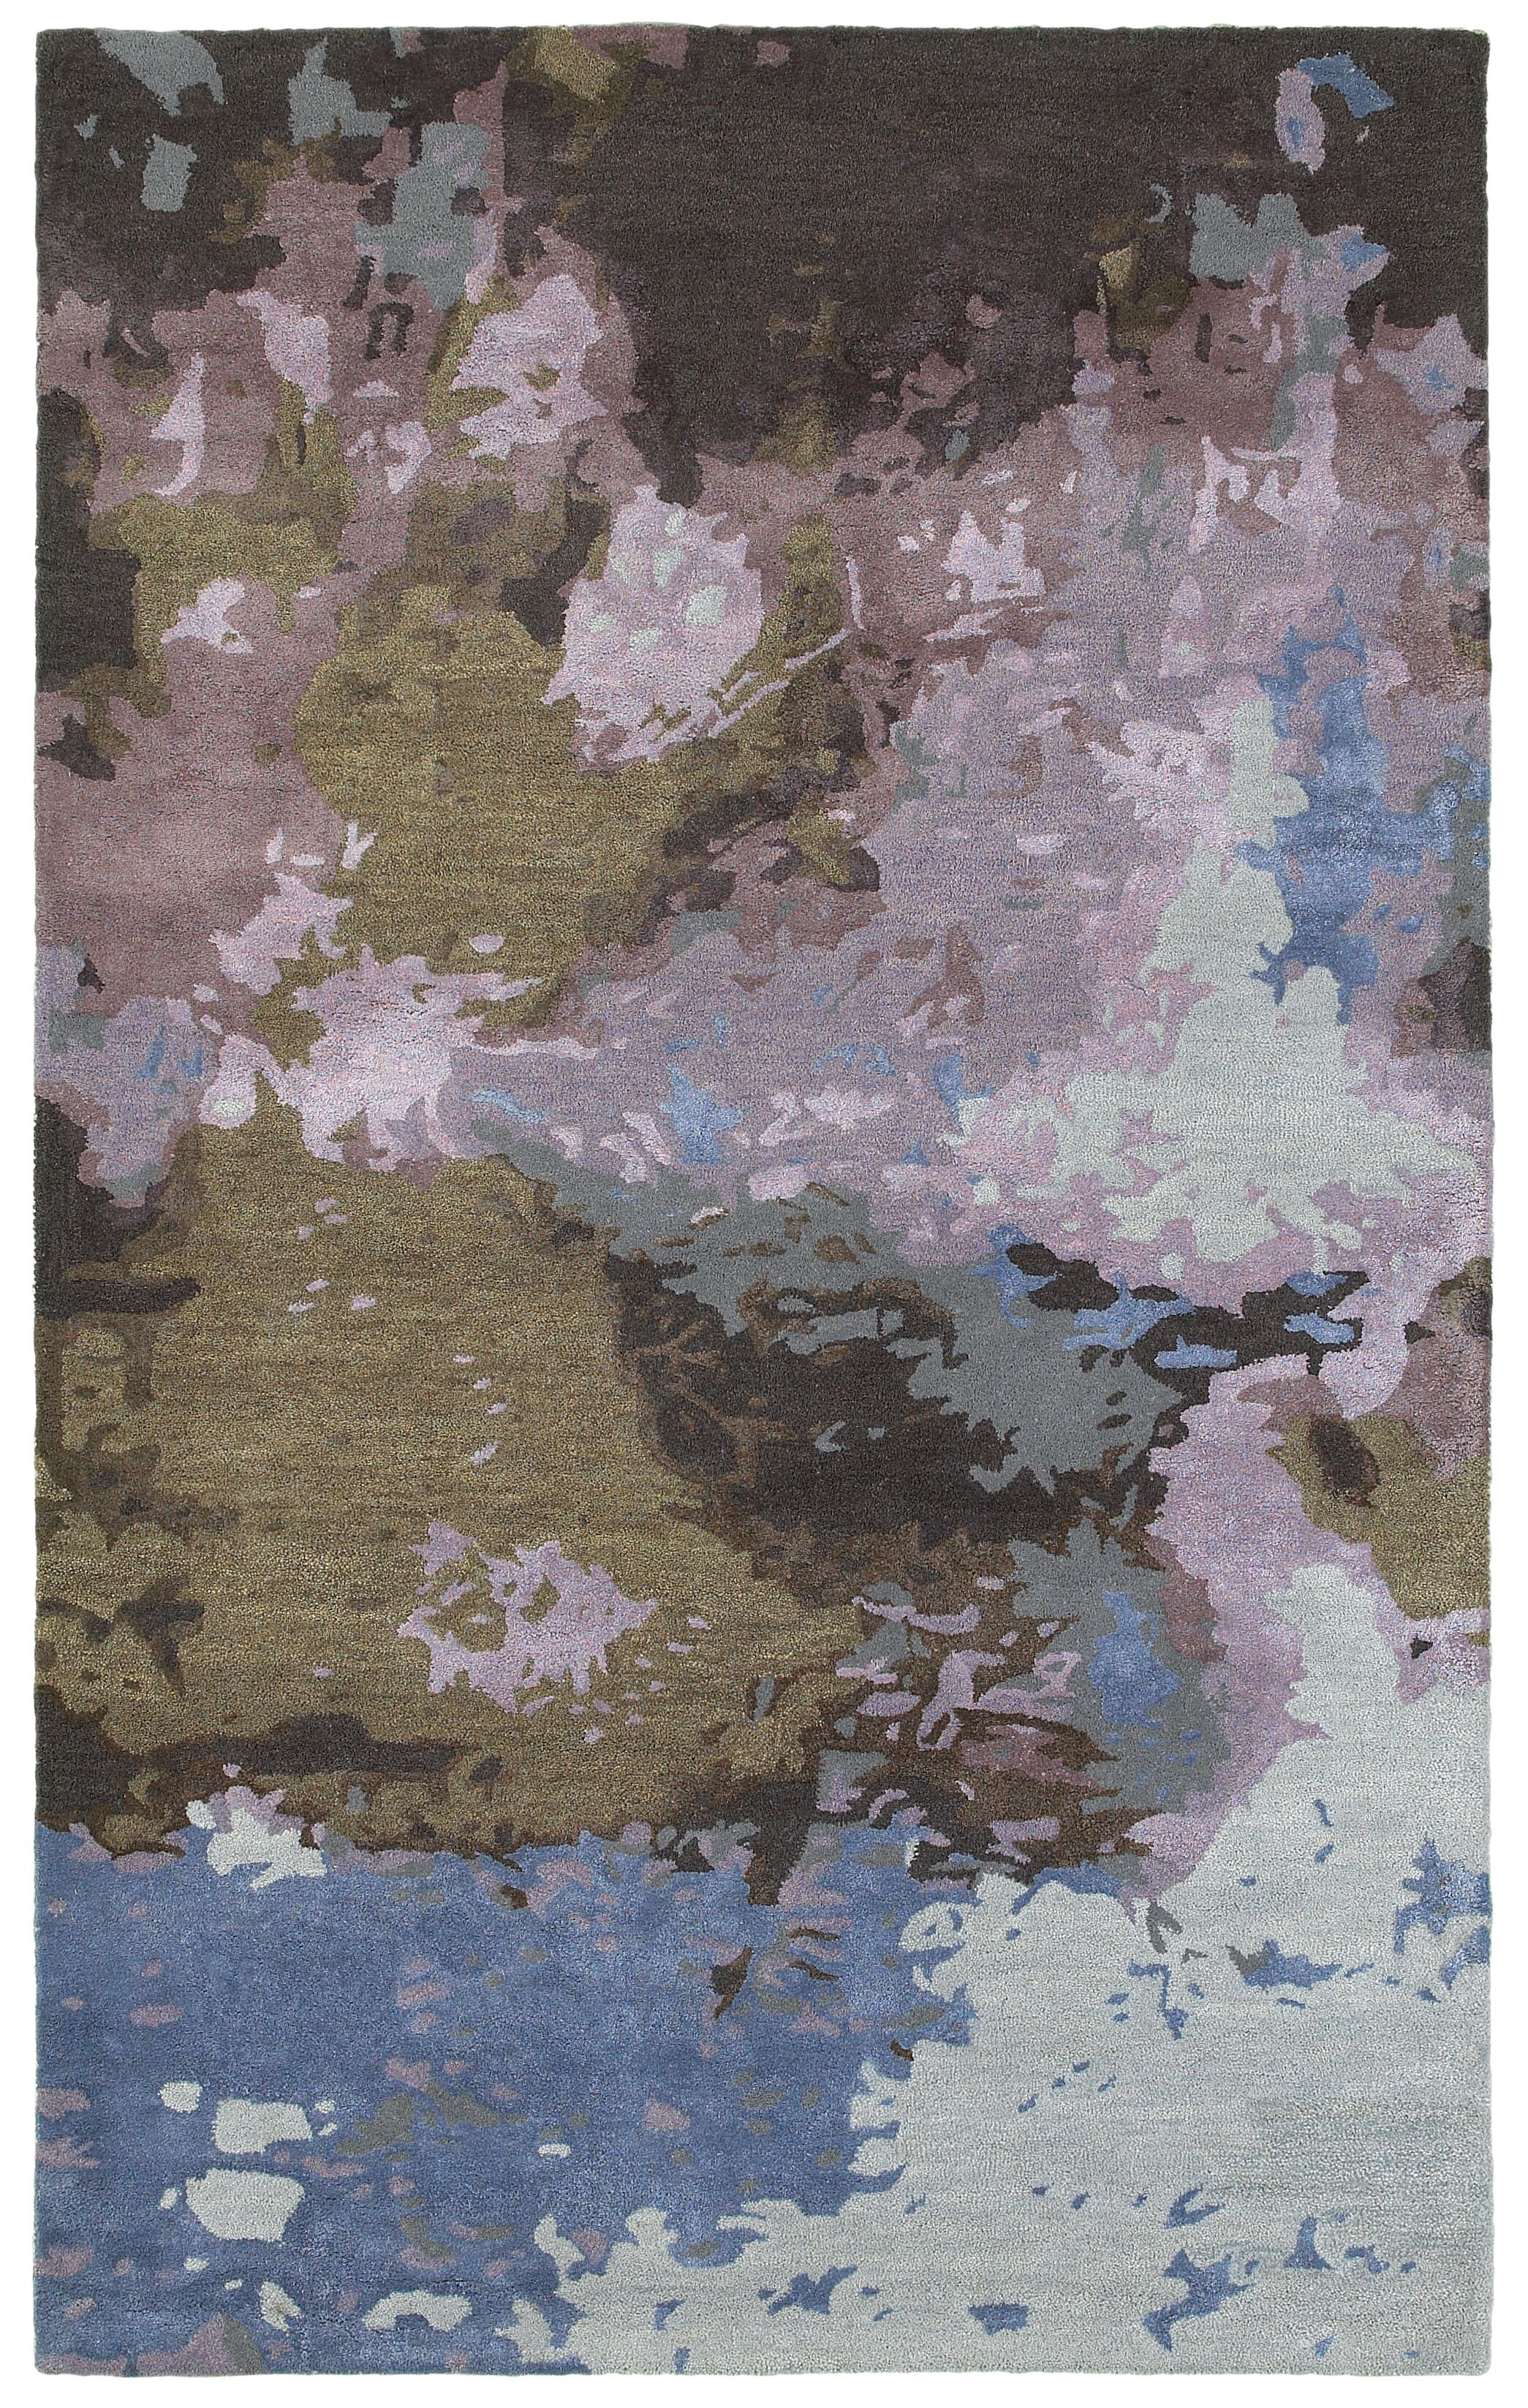 Wora Hand-Crafted Blue/Purple Area Rug Rug Size: Rectangle 10' x 12'11